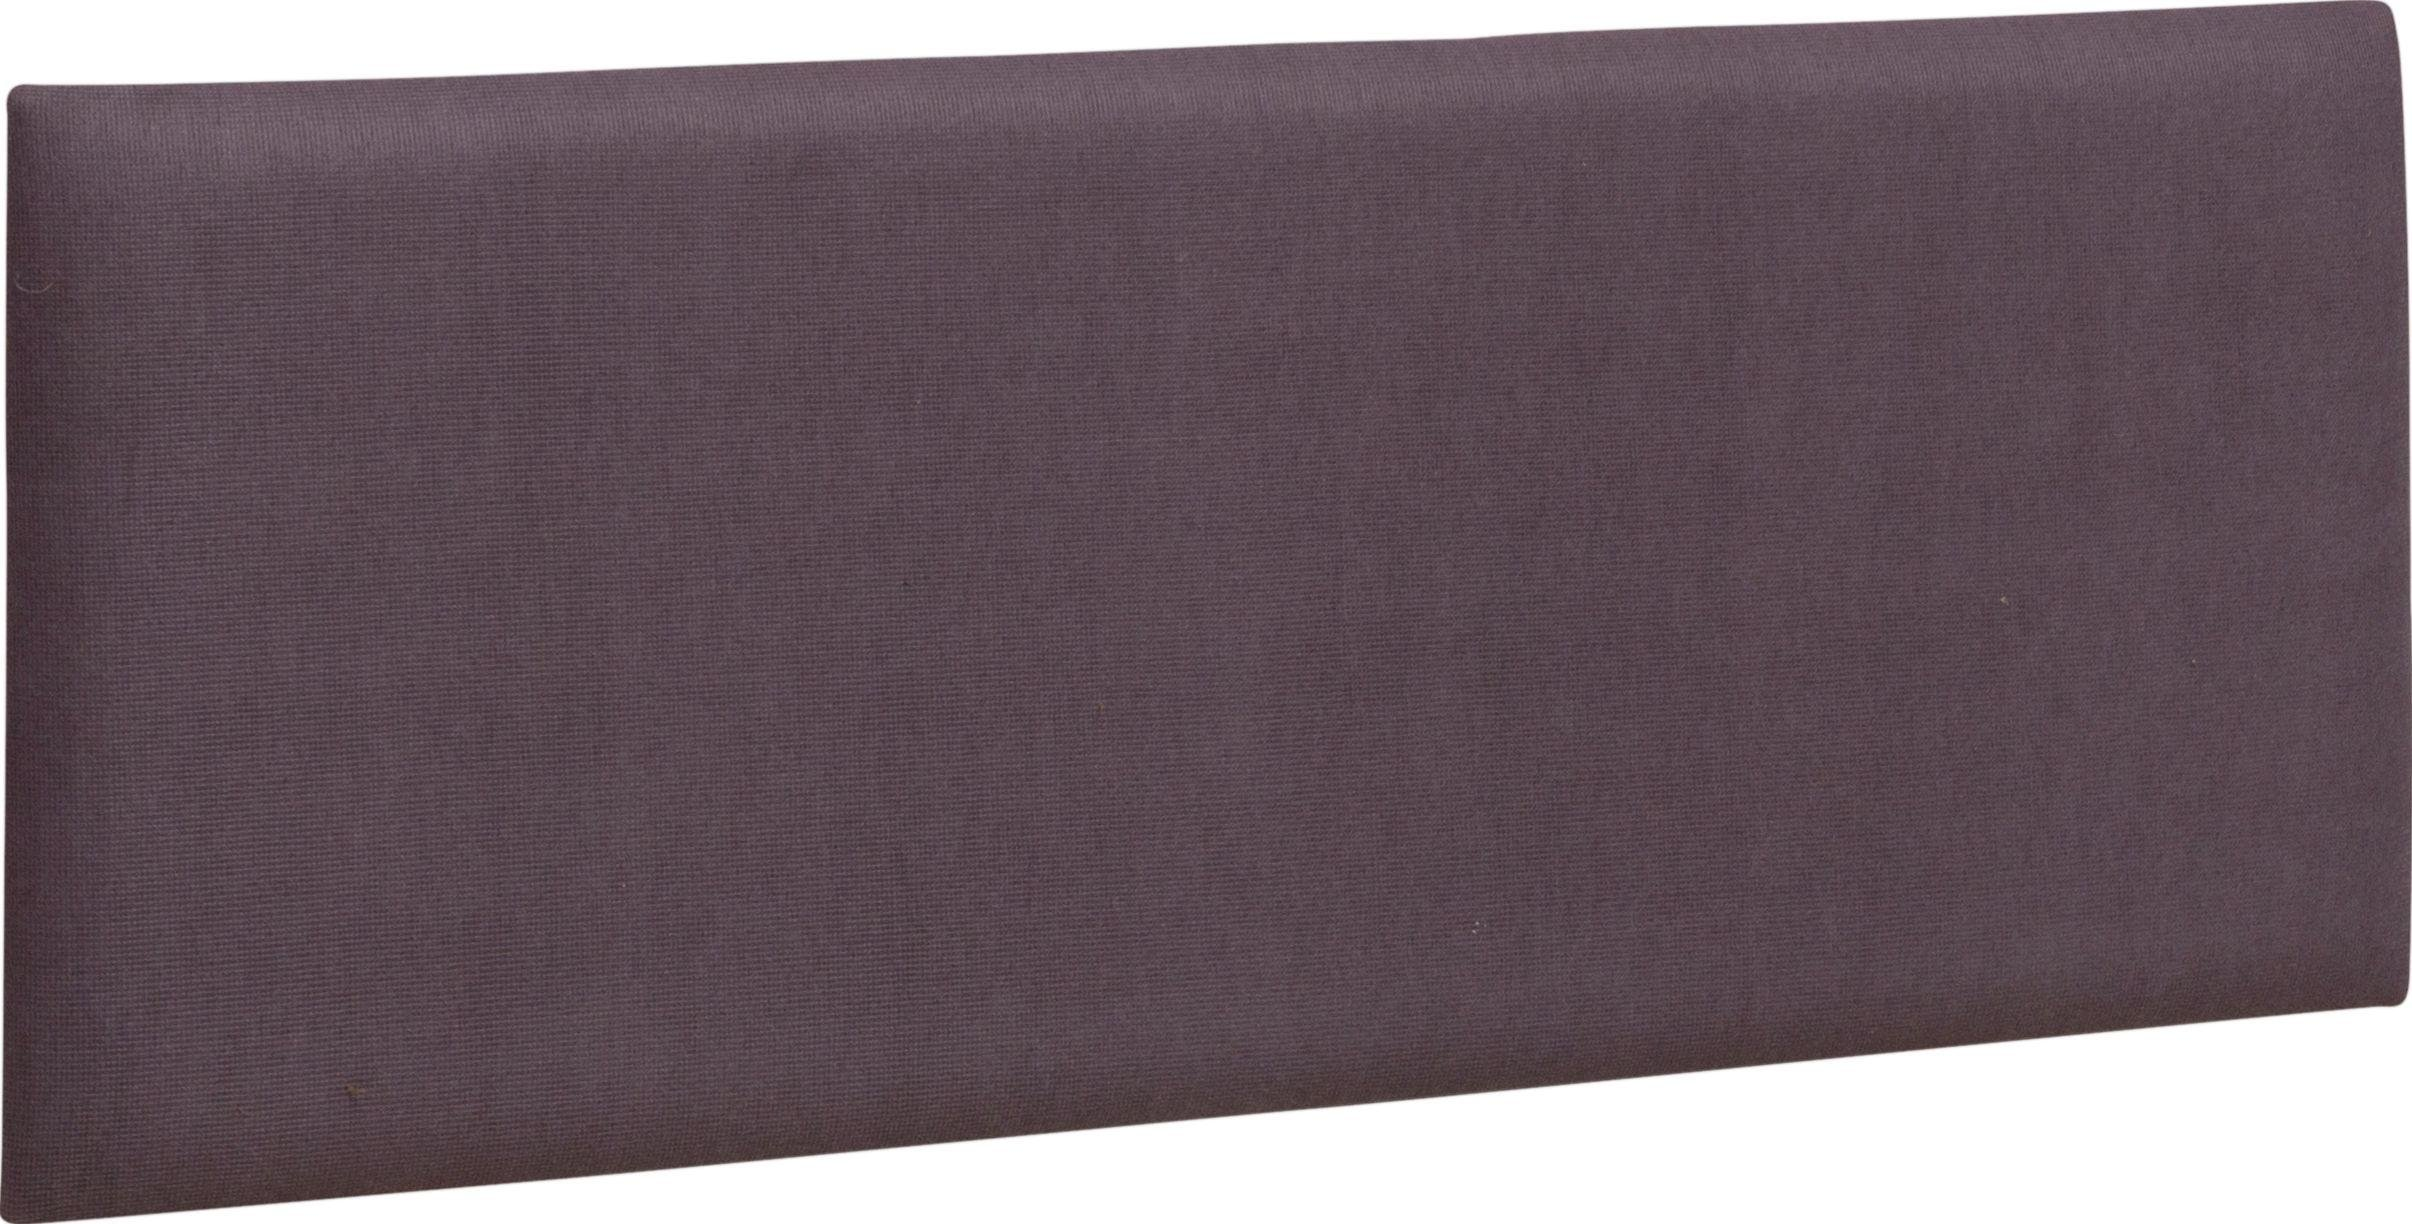 Forty Winks Danby Single Headboard - Plum